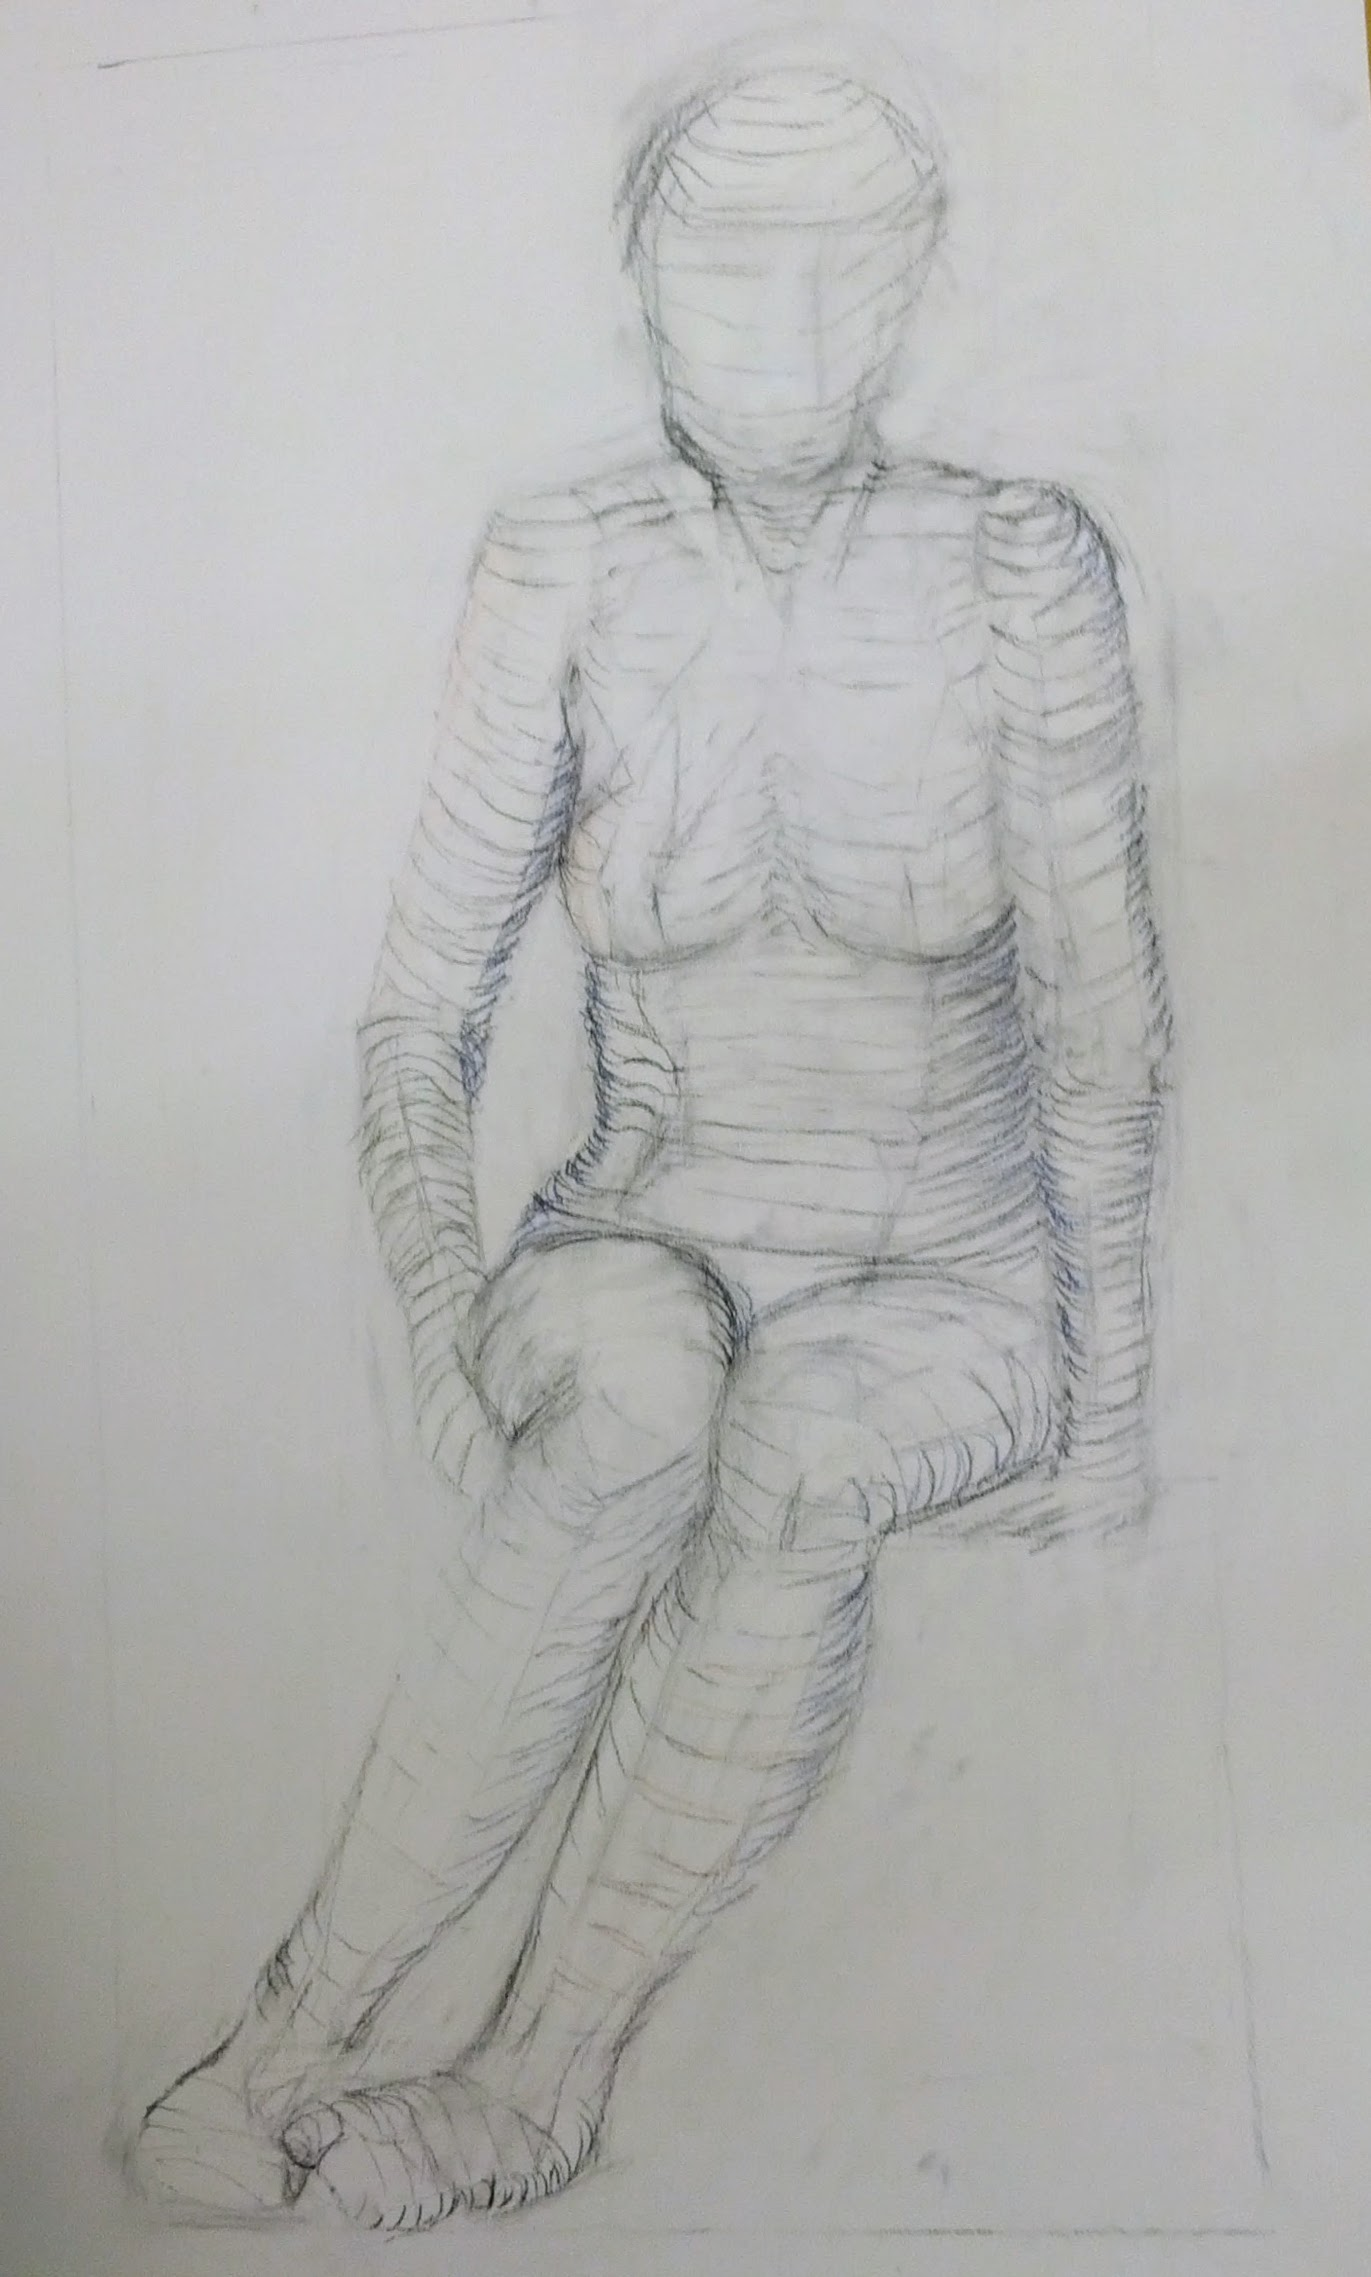 Expression of Interest for Life Drawing - Looking at running life drawing untutored sessions alternate Friday evenings.Dependant on numbers (minimum of 6)Cost: $11 per session (for cost of model)Contact: Ann Whitbyann@whitby.id.au | 0410 128 848